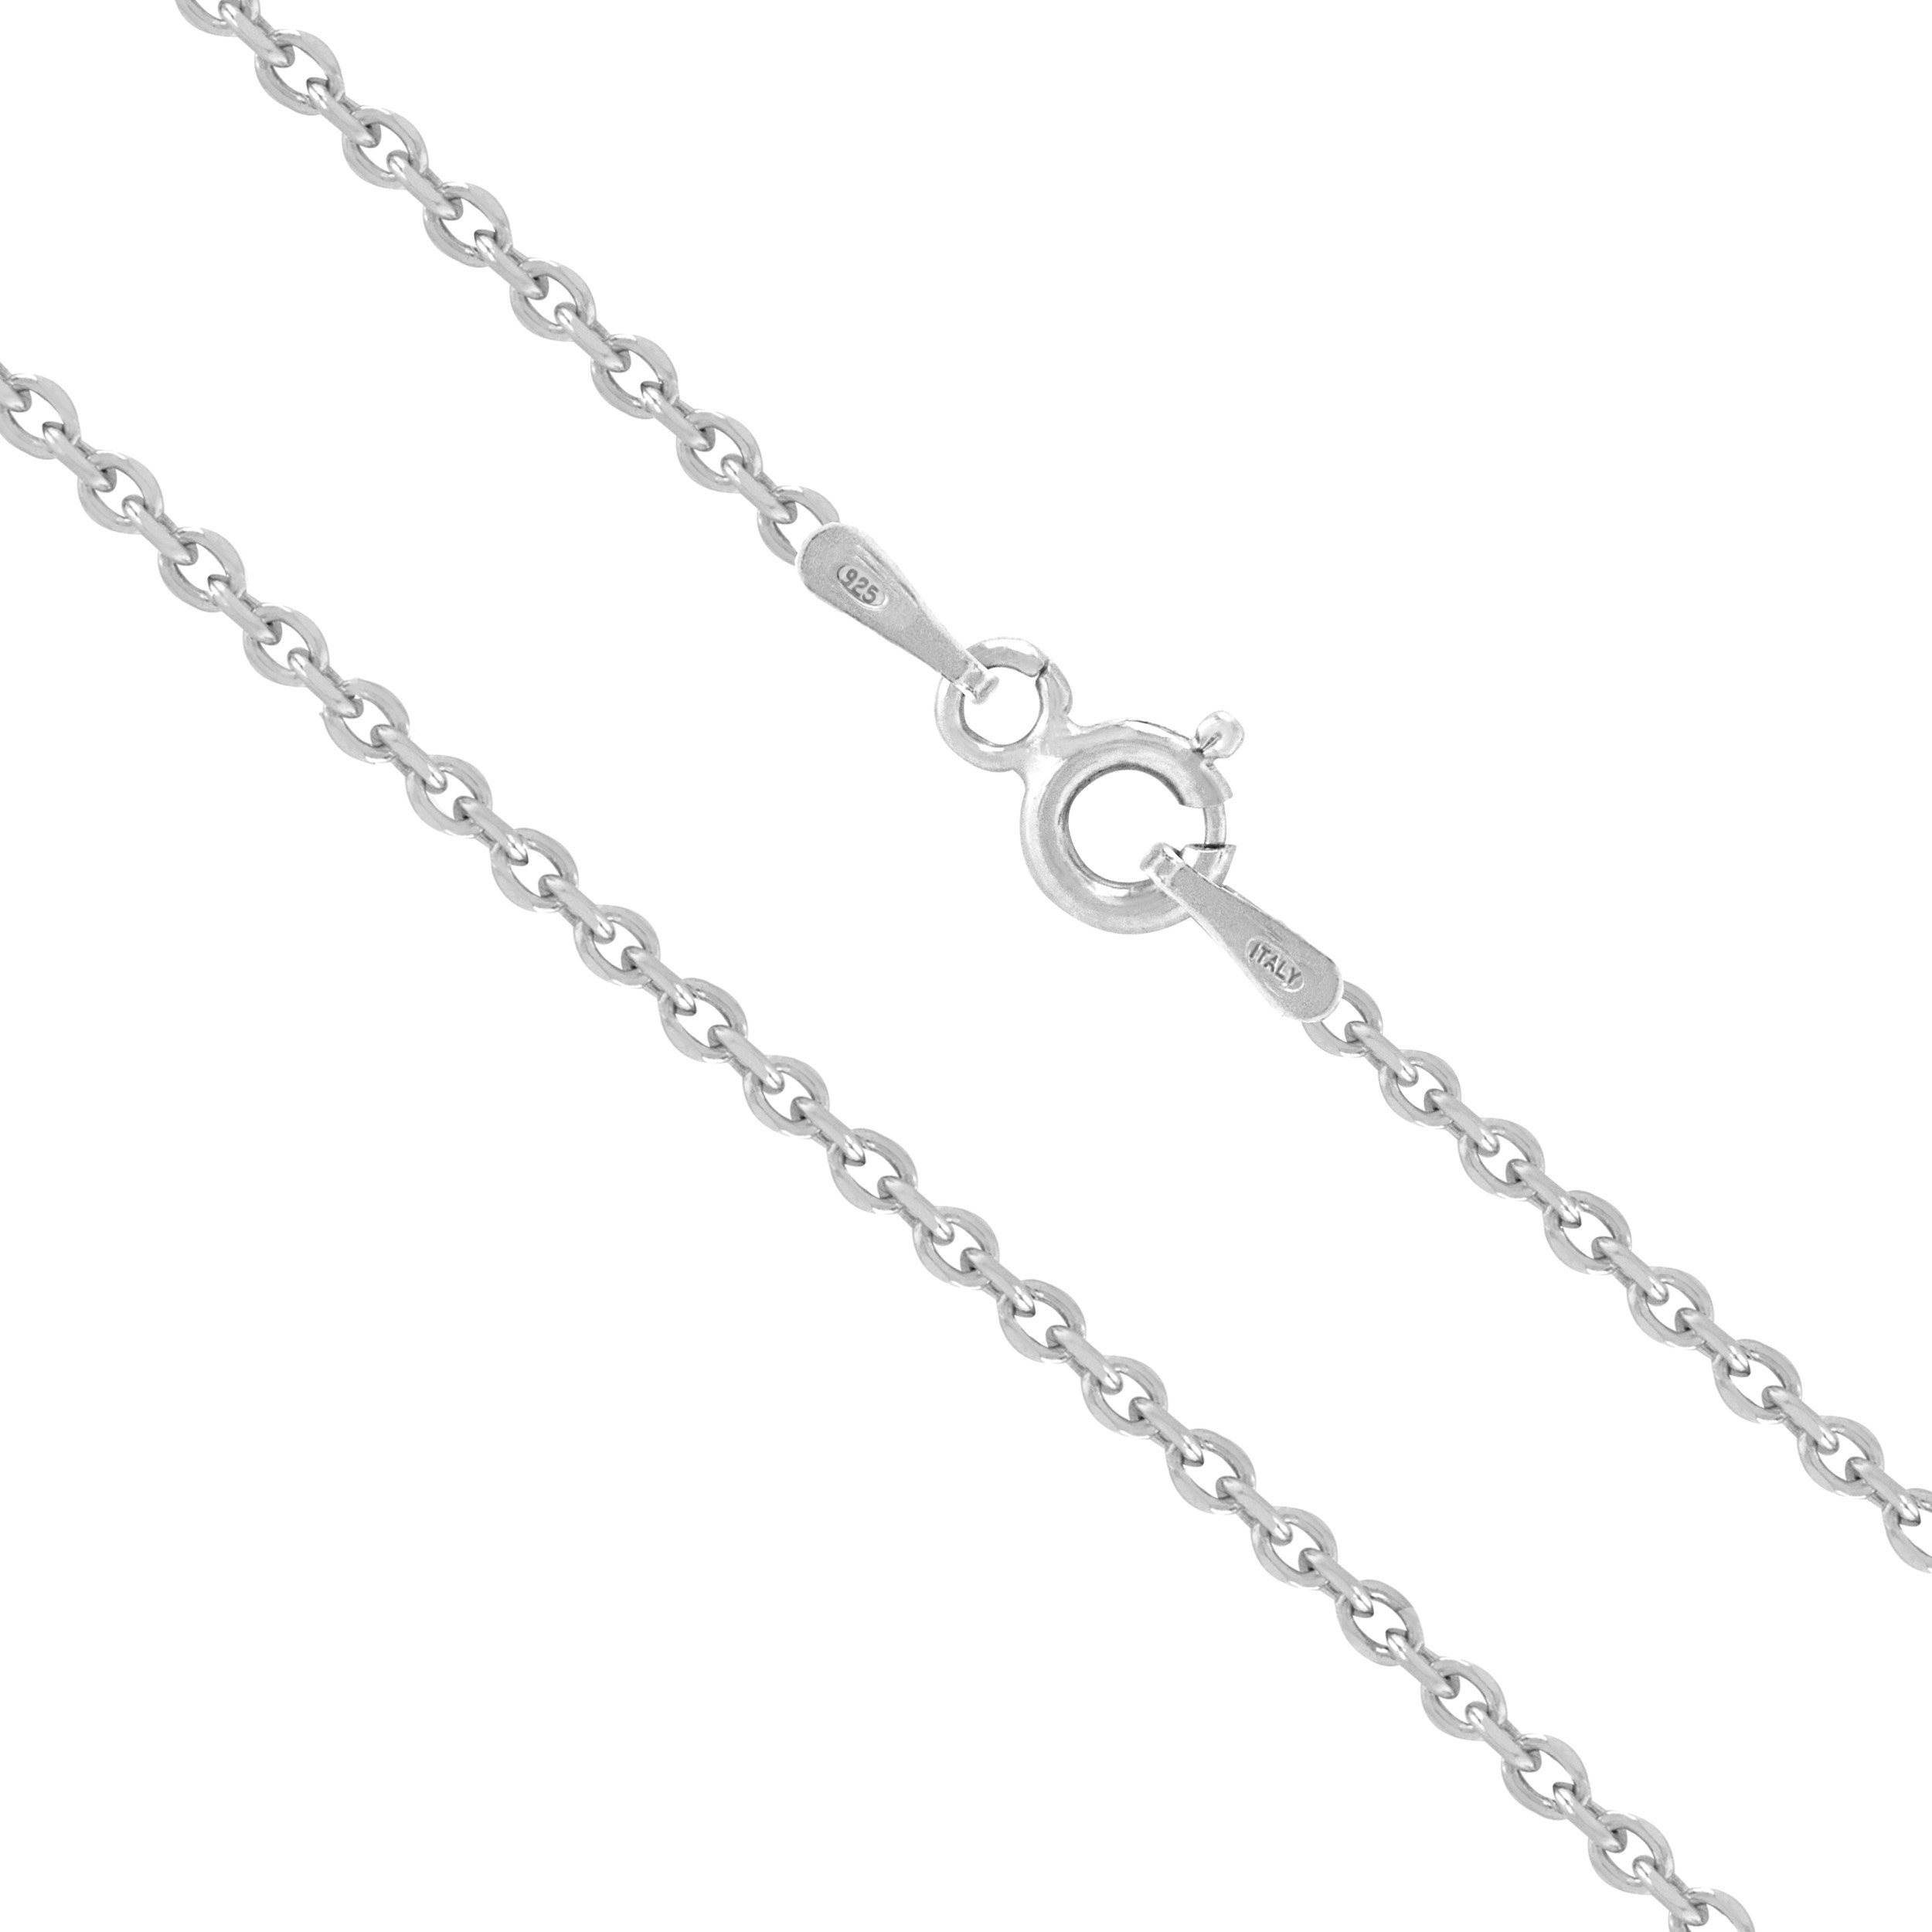 Honolulu Jewelry Company Sterling Silver 1.5mm Cable Chain (20 Inches)